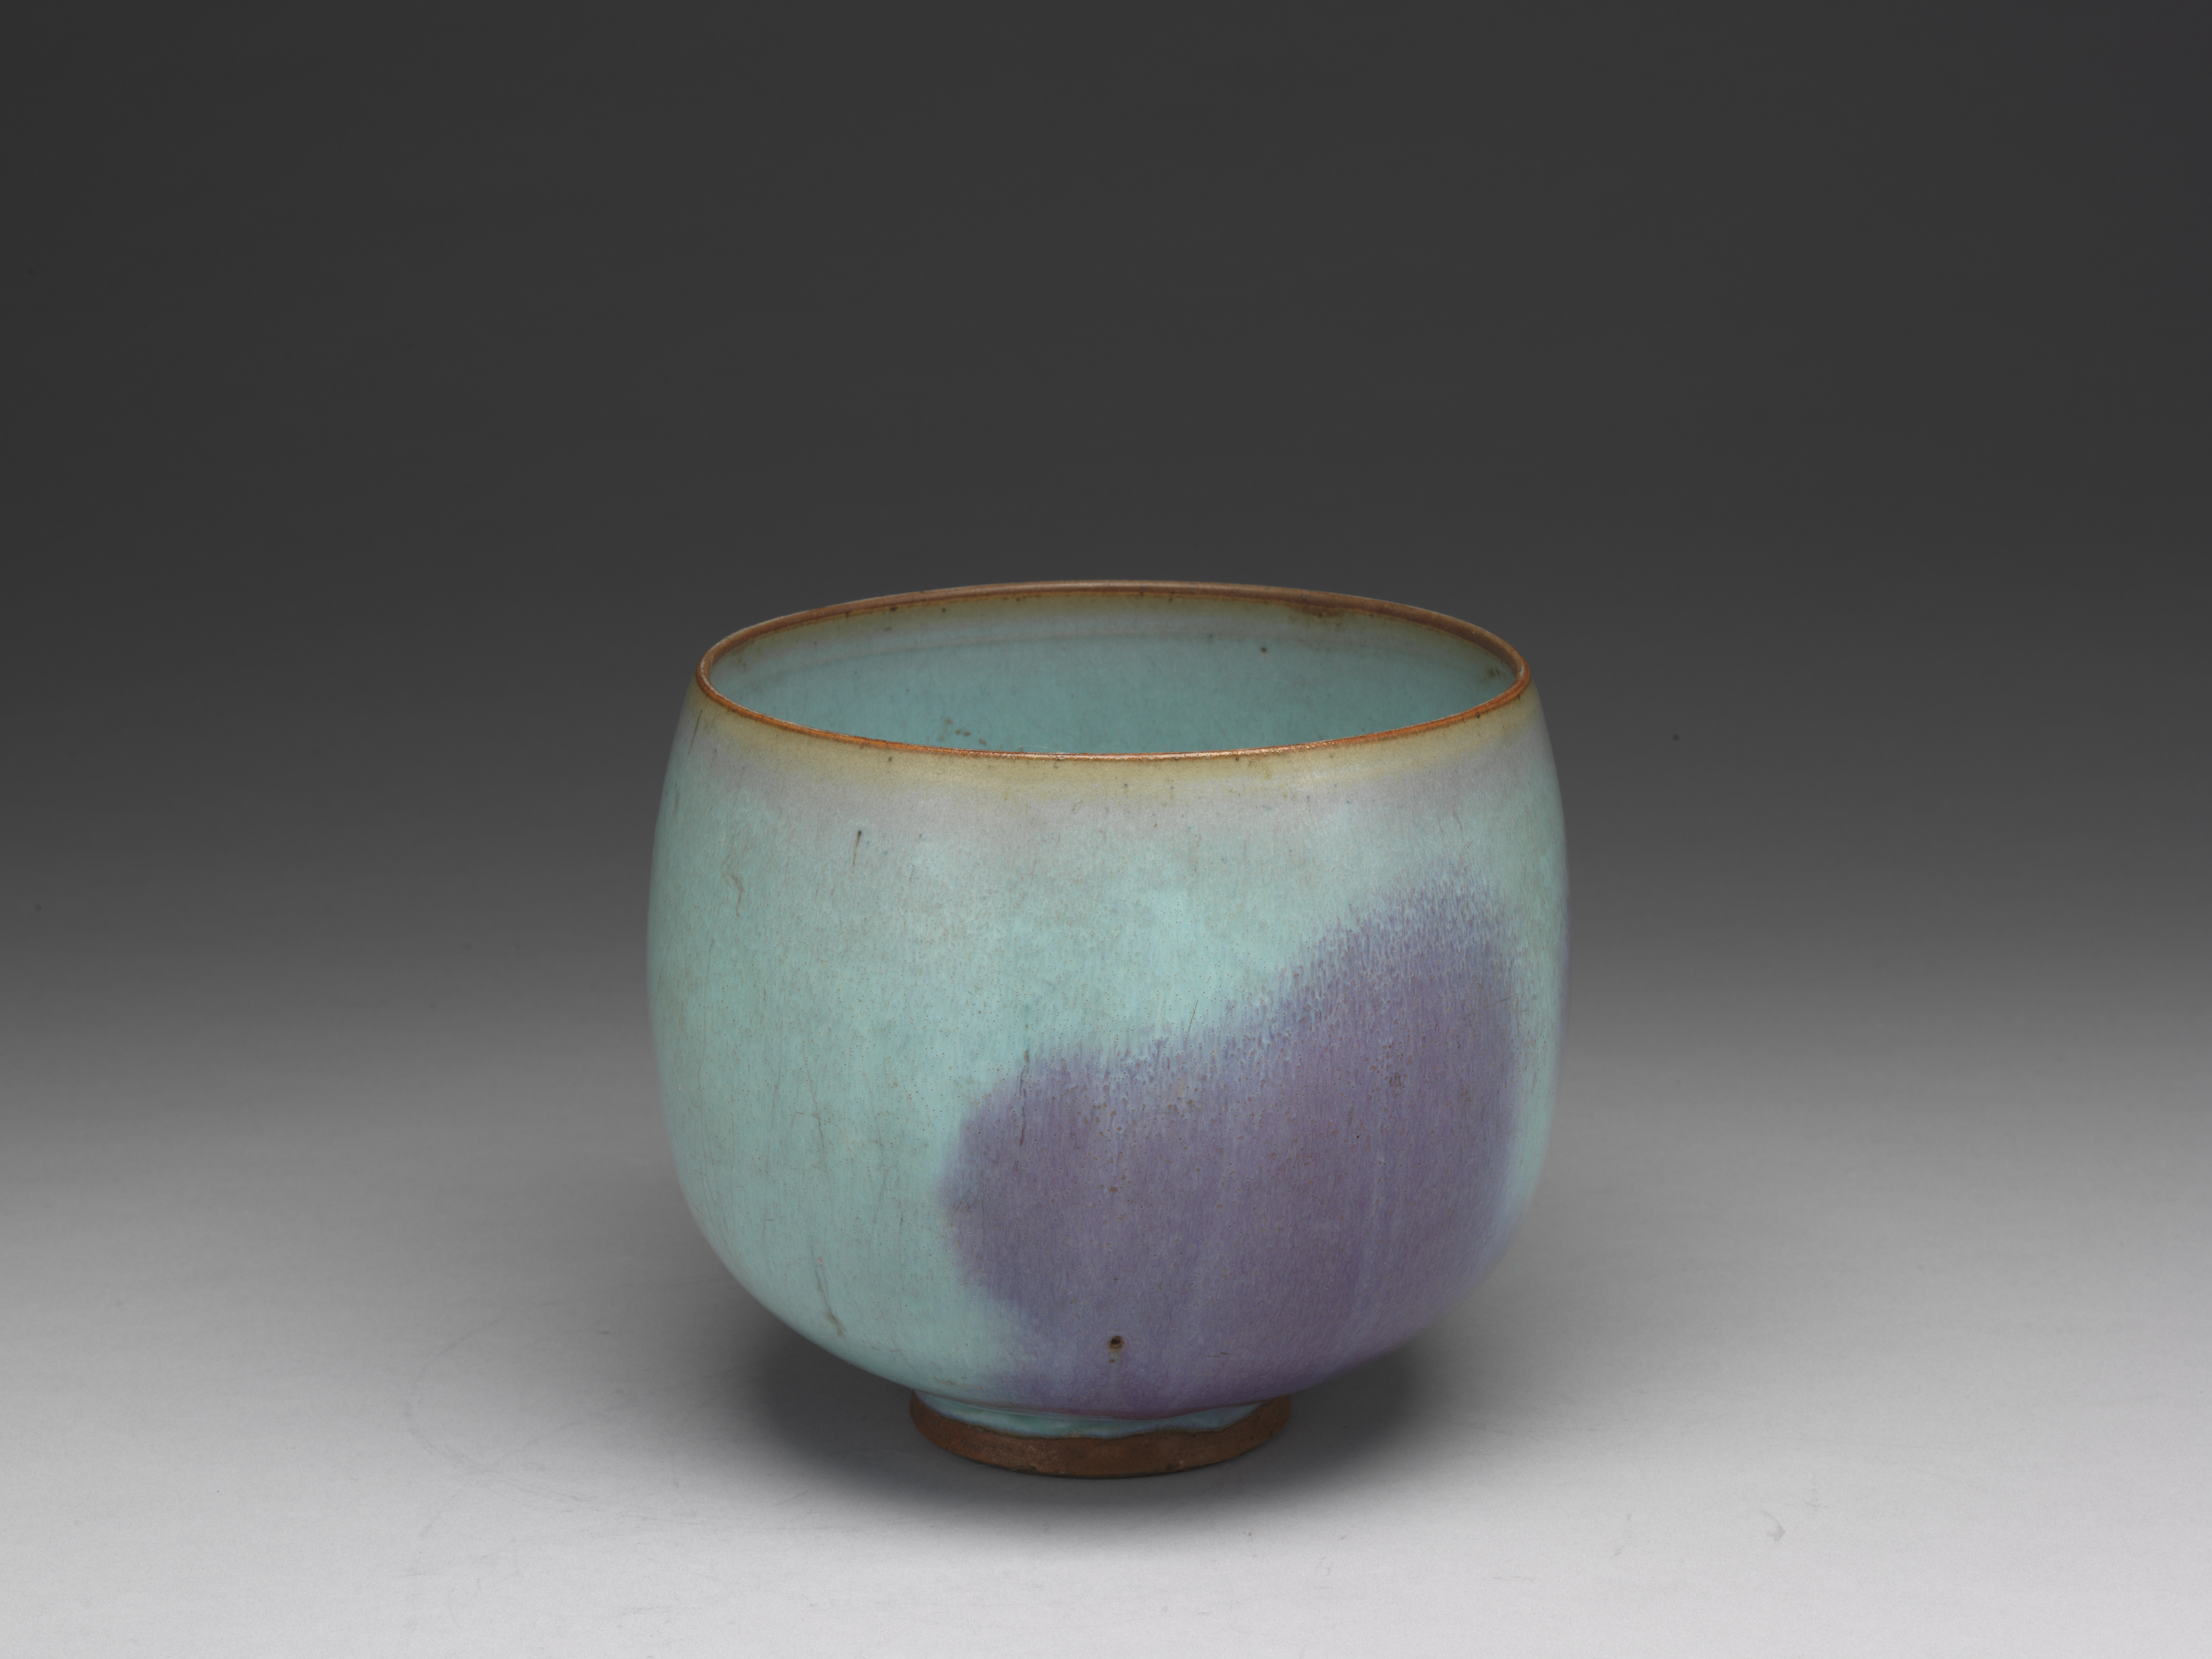 Bowl with sky-blue glaze and purple splashes